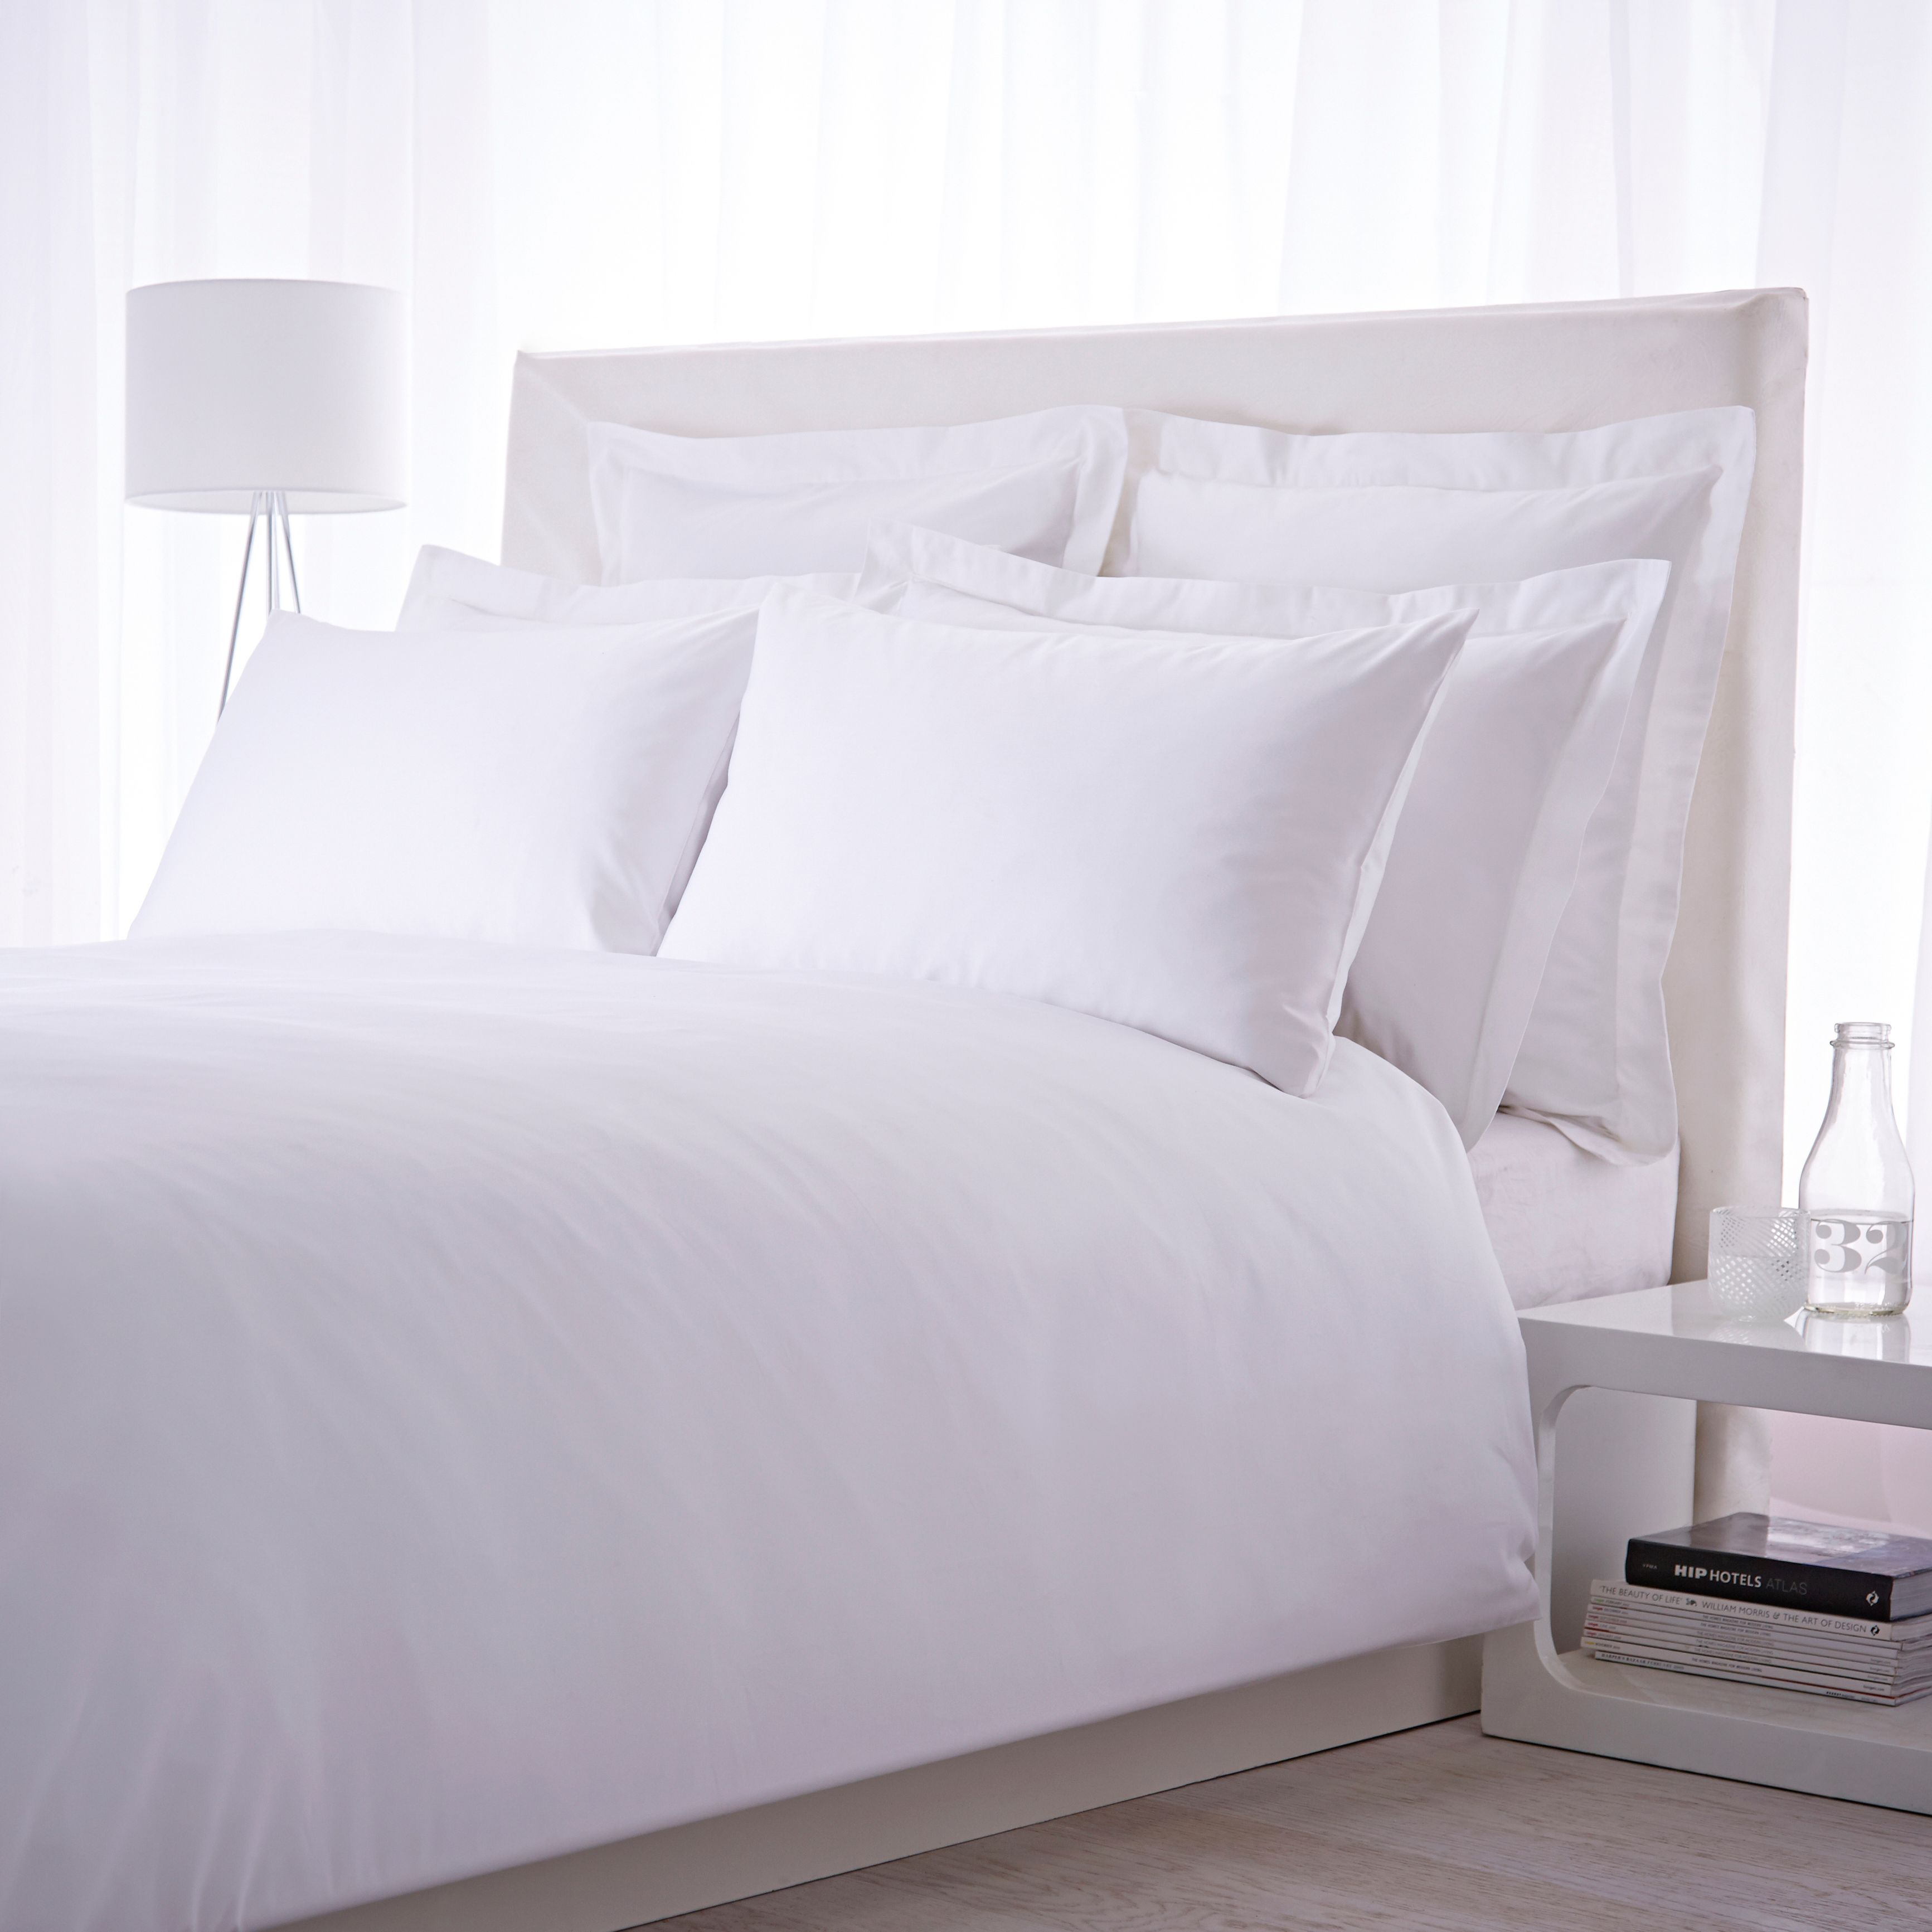 500 thread count bedding house of fraser for Luxury hotel 750 collection sheets